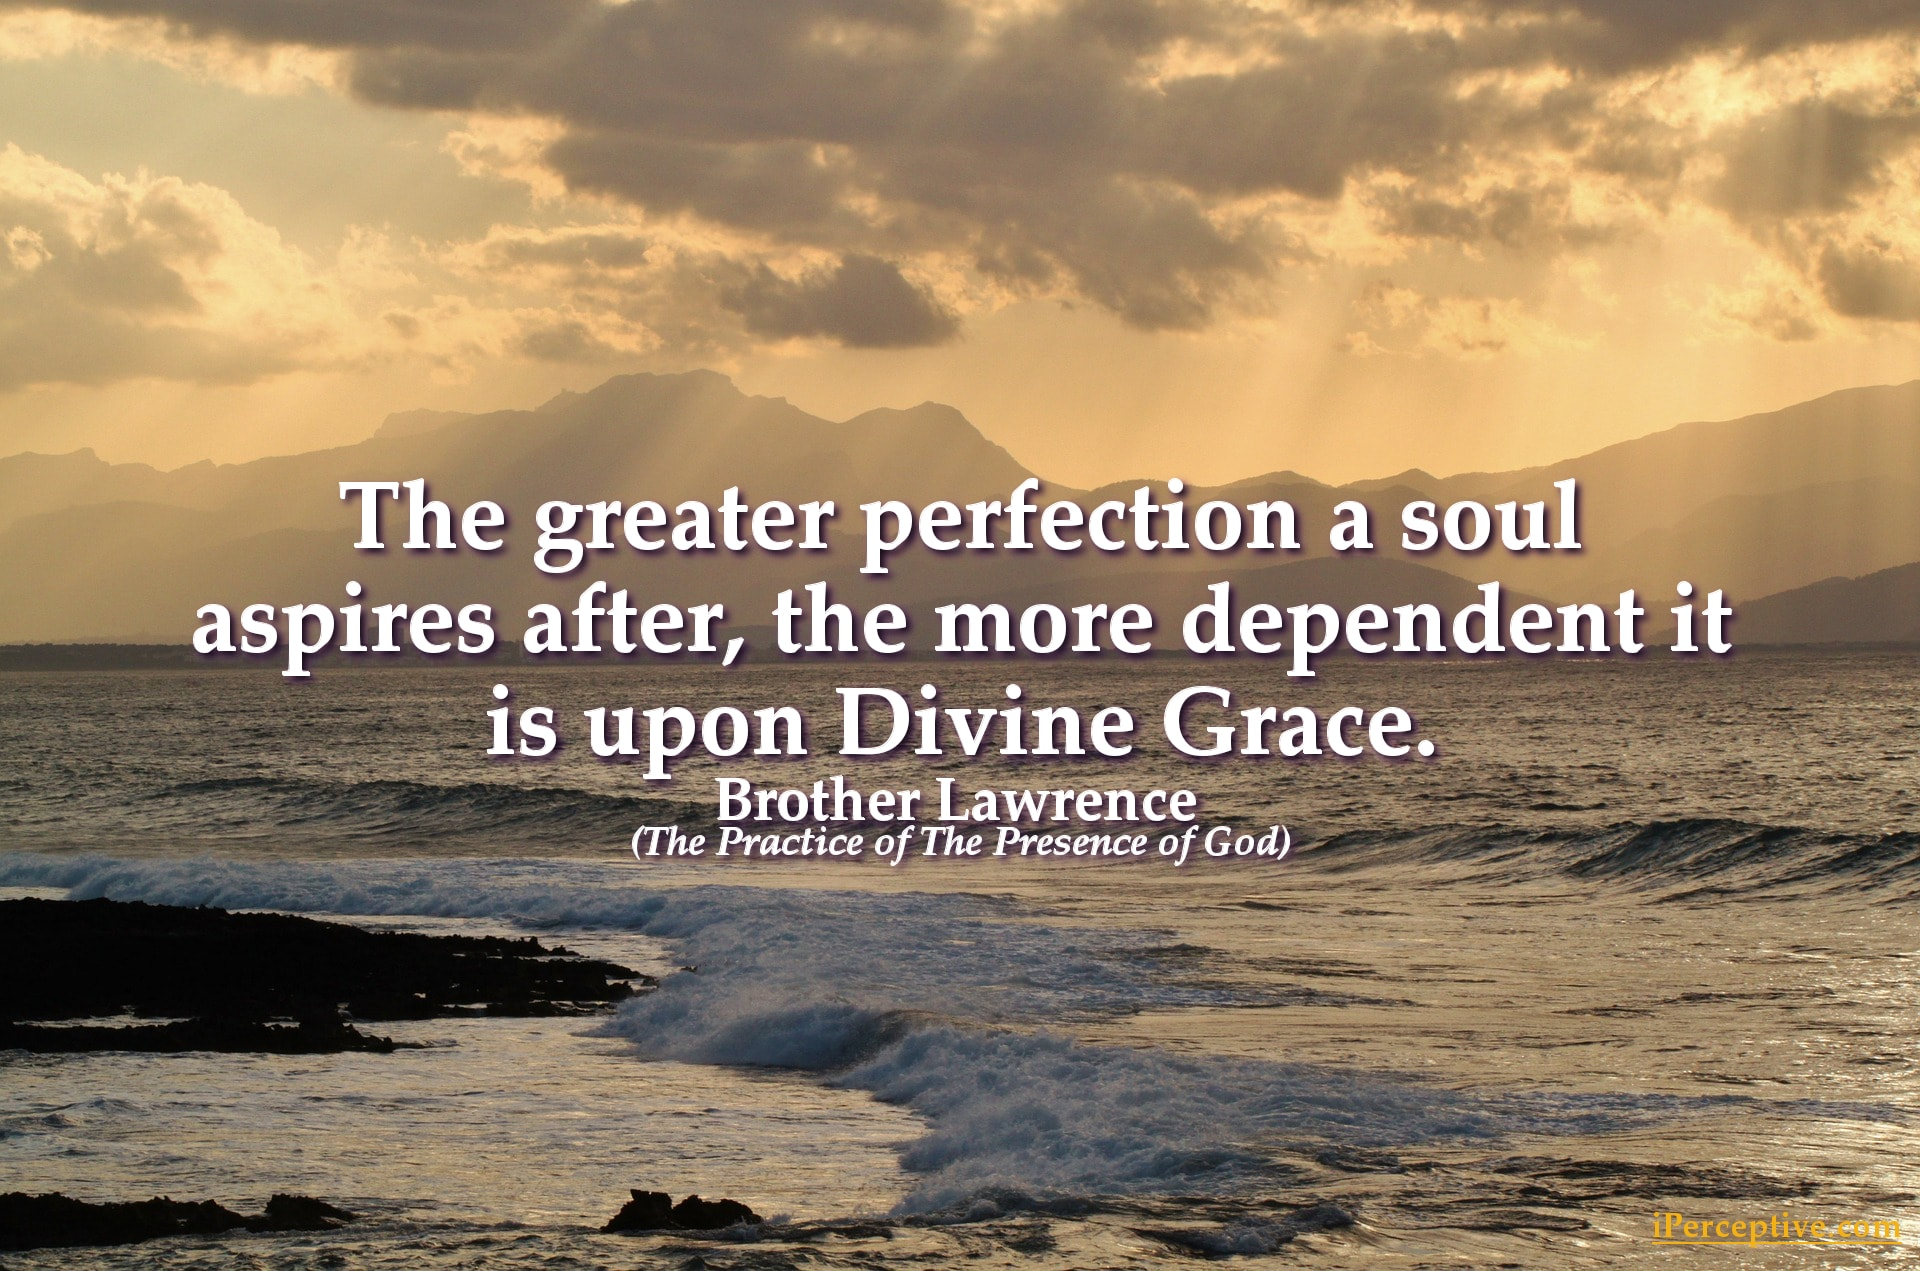 Brother Lawrence Christian Mystic Quote: The greater perfection a soul aspires after, the more...